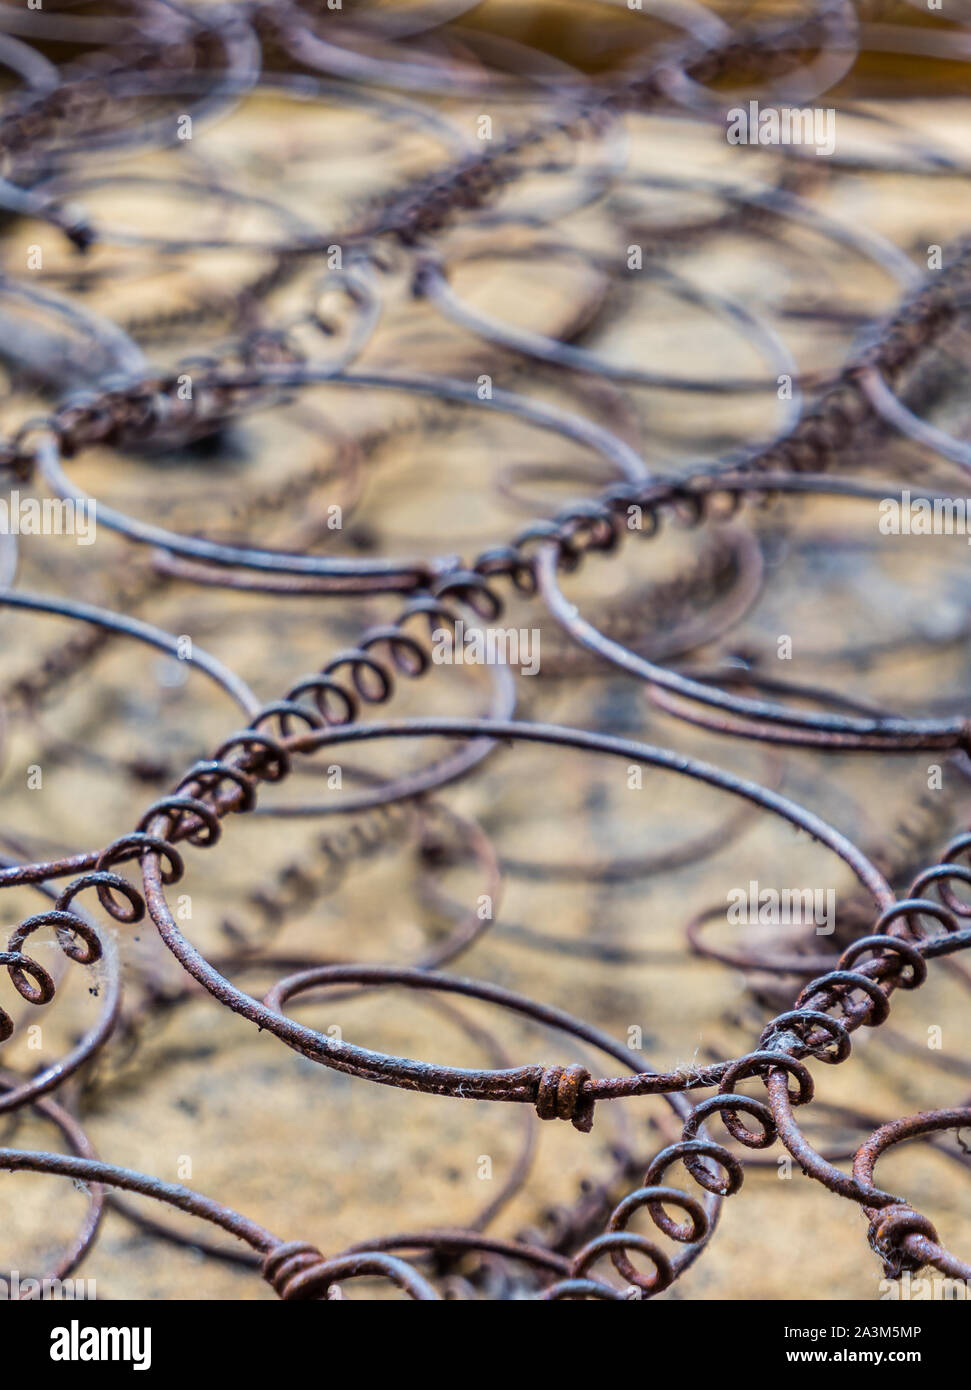 Metal Springs Of An Old Mattress Stock Photo Alamy